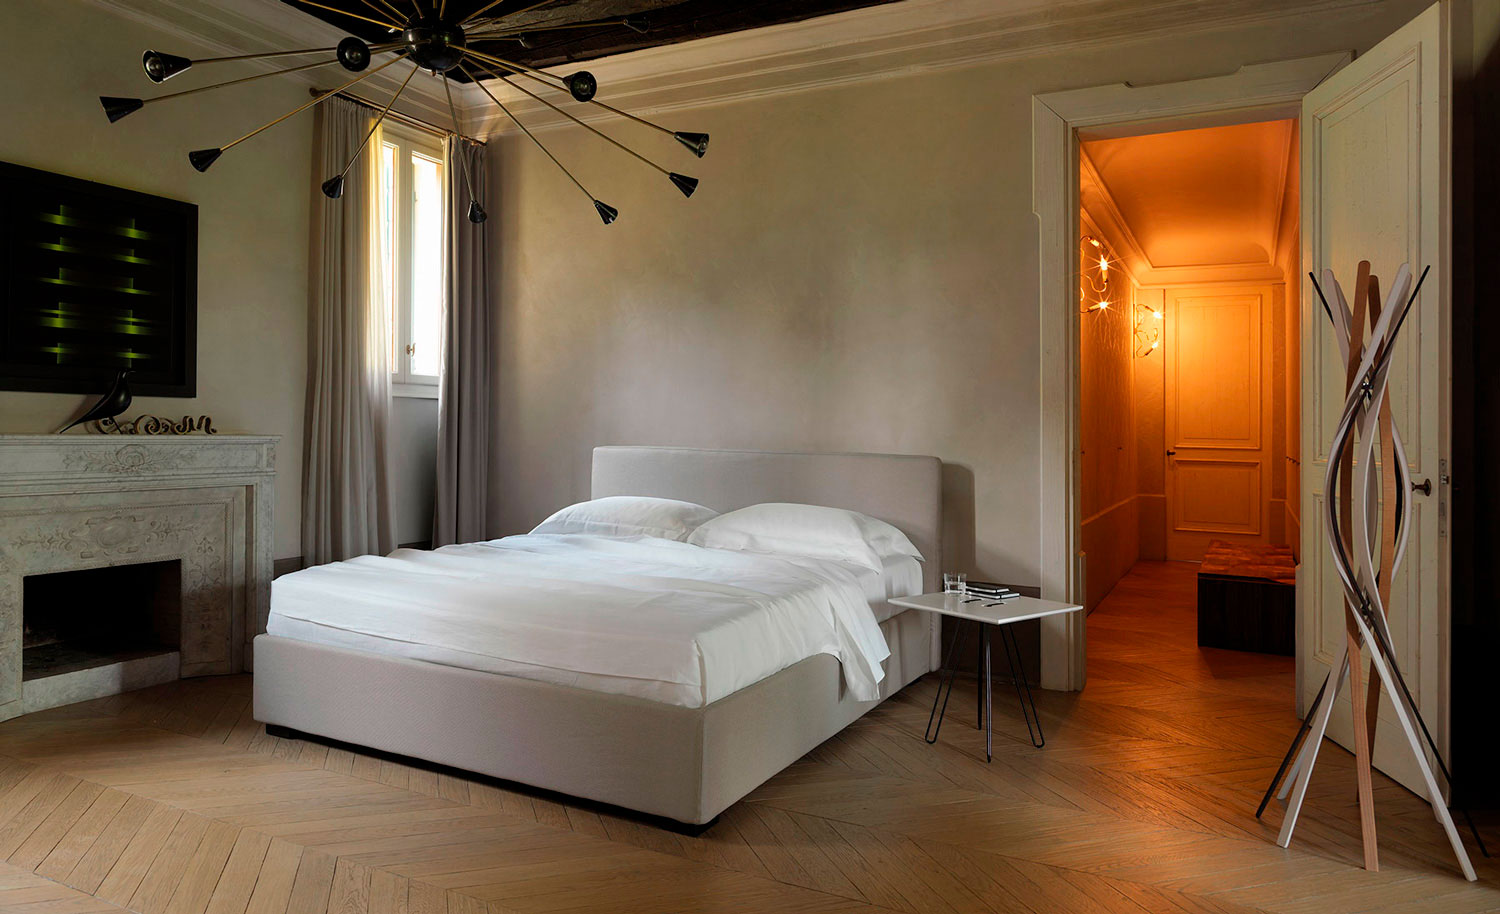 Lipari Plus bed in a bedroom